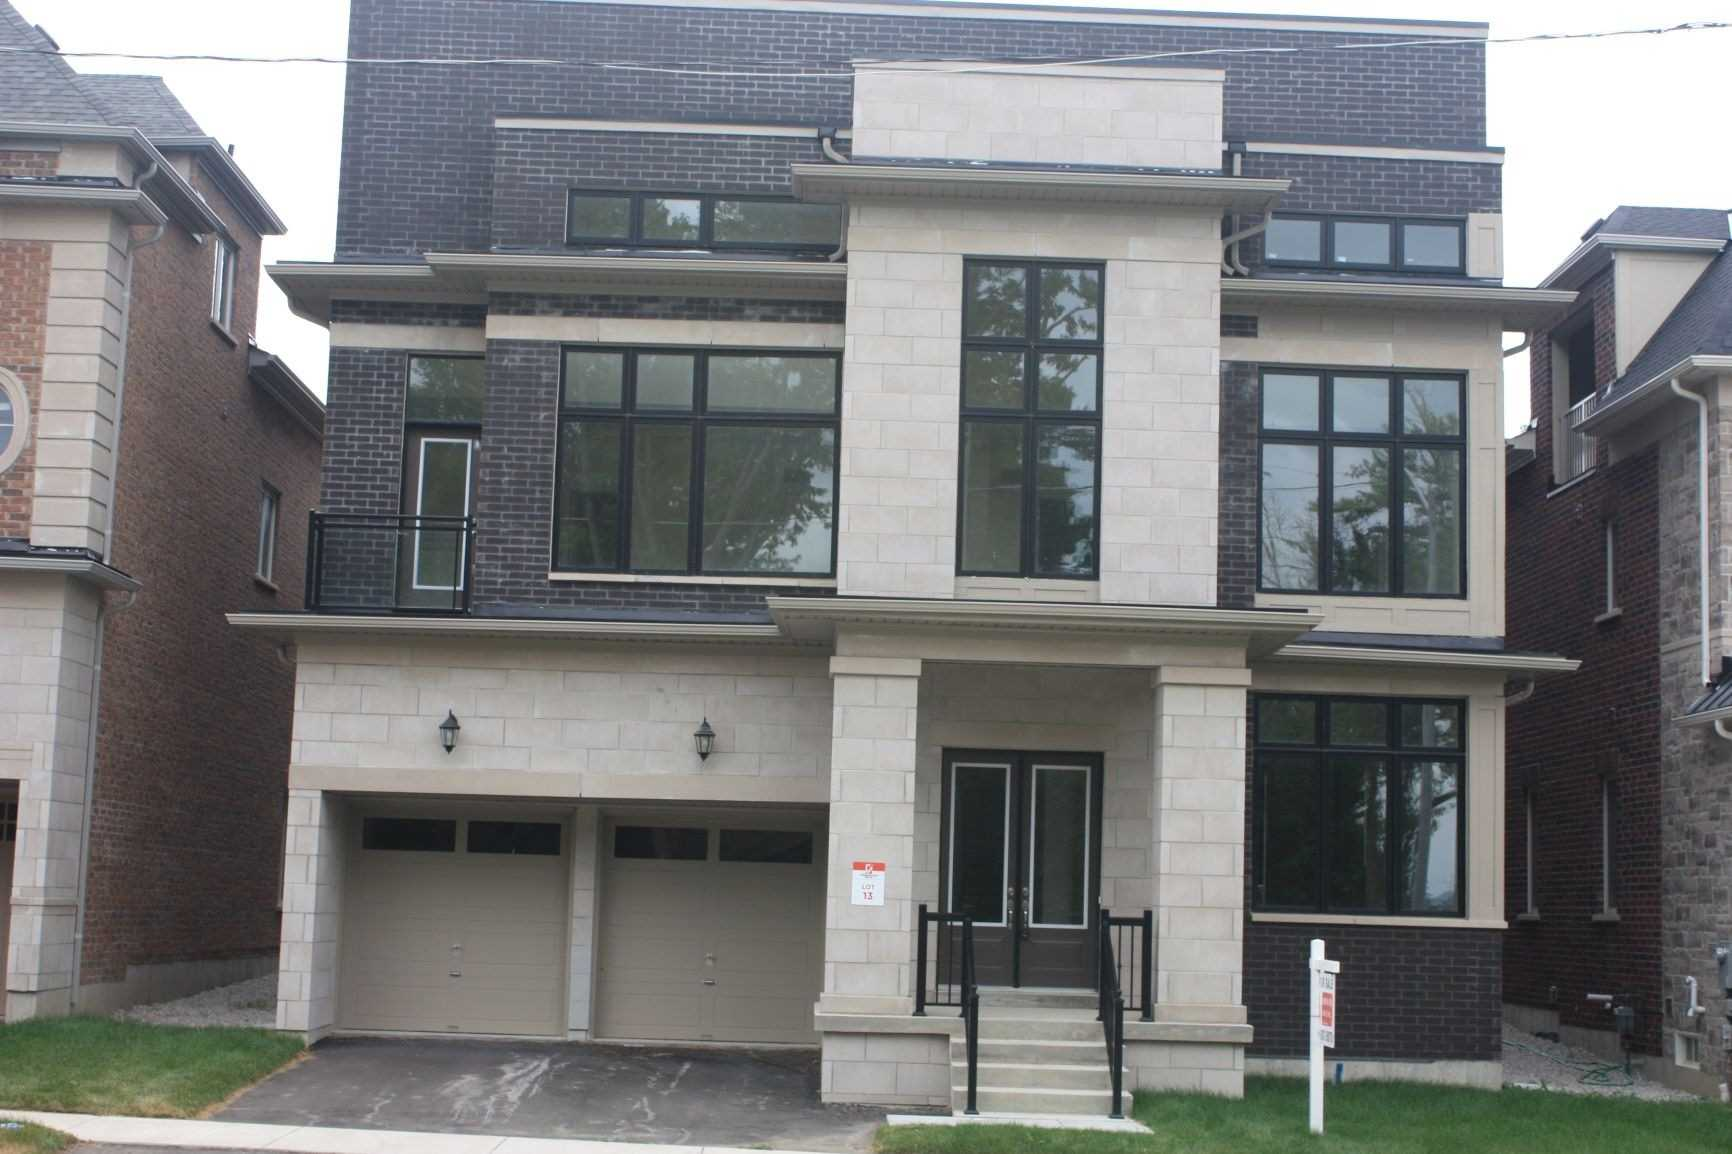 155 Hillsview Dr, Richmond Hill, Ontario L4C1T2, 4 Bedrooms Bedrooms, 14 Rooms Rooms,7 BathroomsBathrooms,Detached,For Sale,Hillsview,N4833675